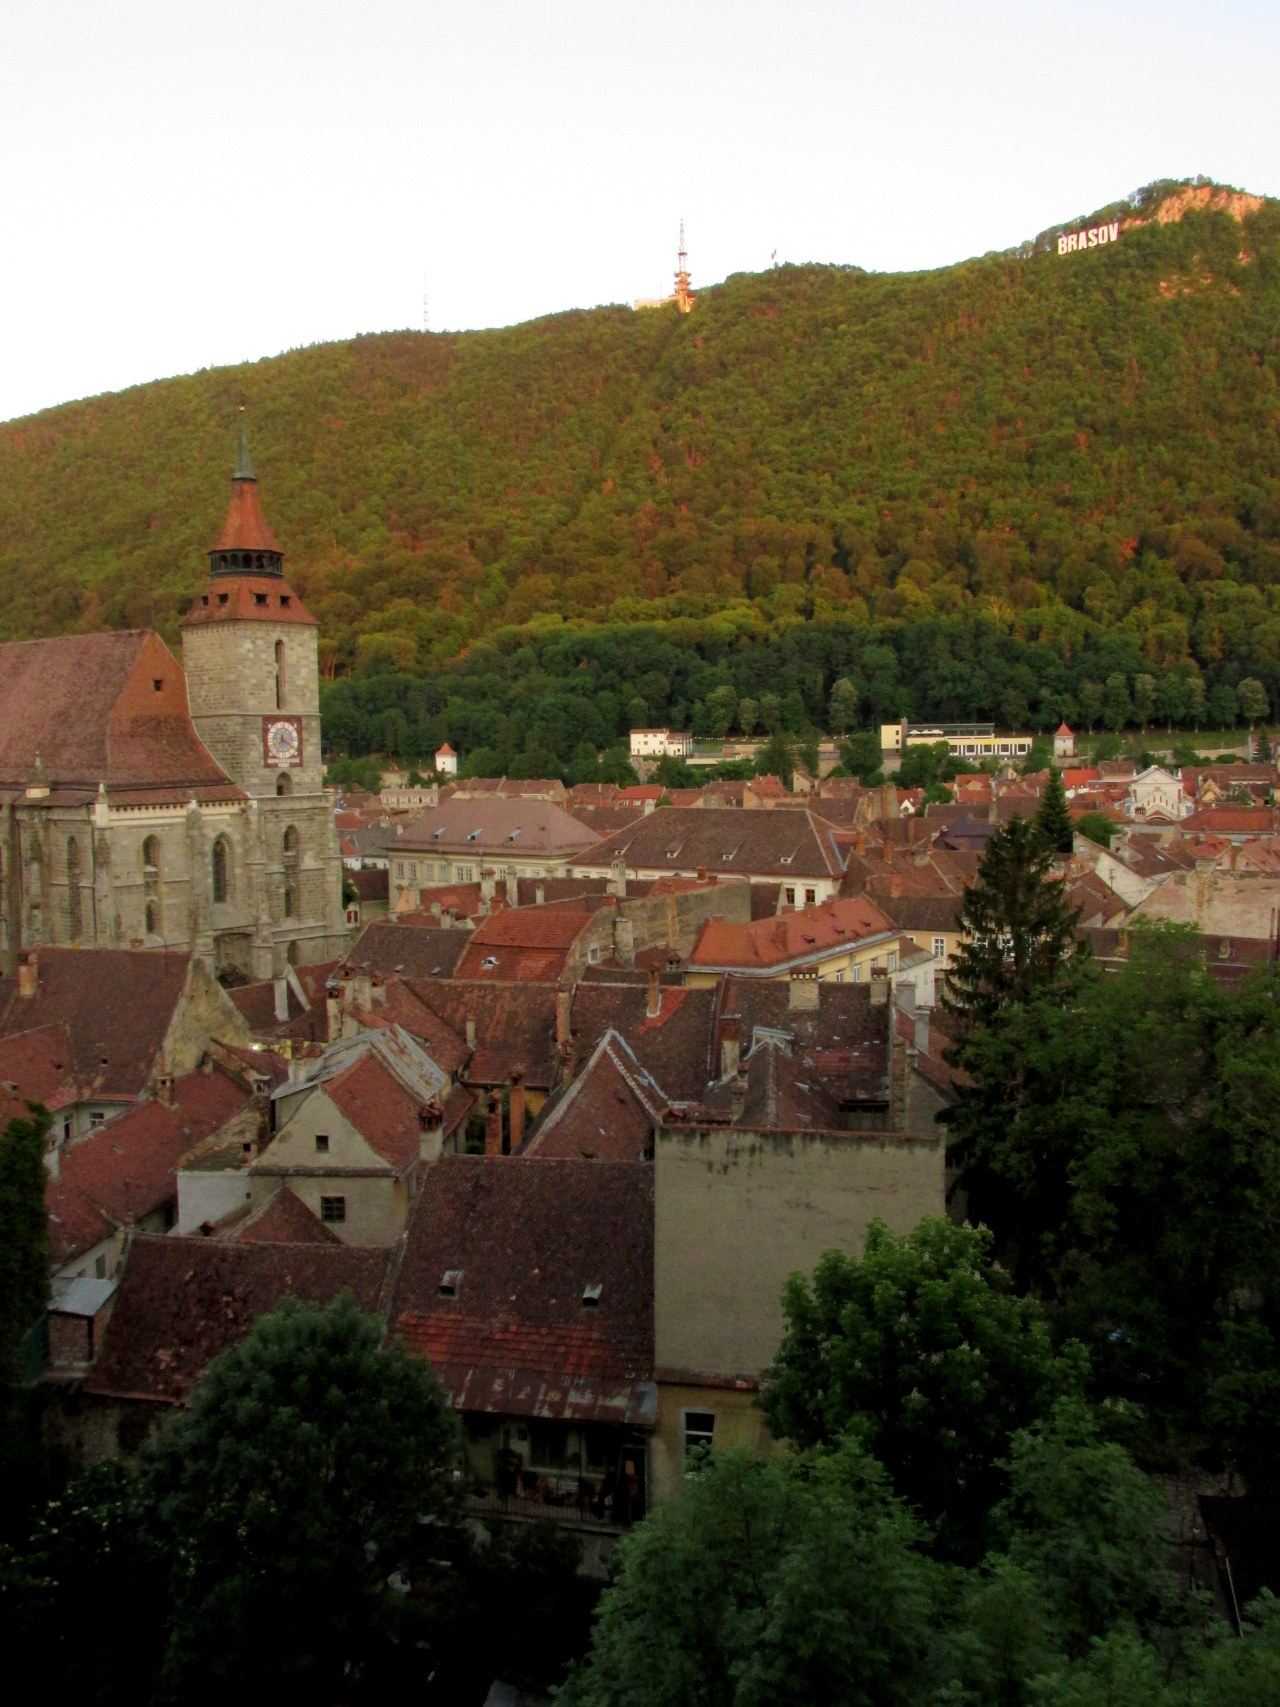 nonsensicalawesomnimityphoto:  View from the Black Tower. Brașov, Romania. May 2013.